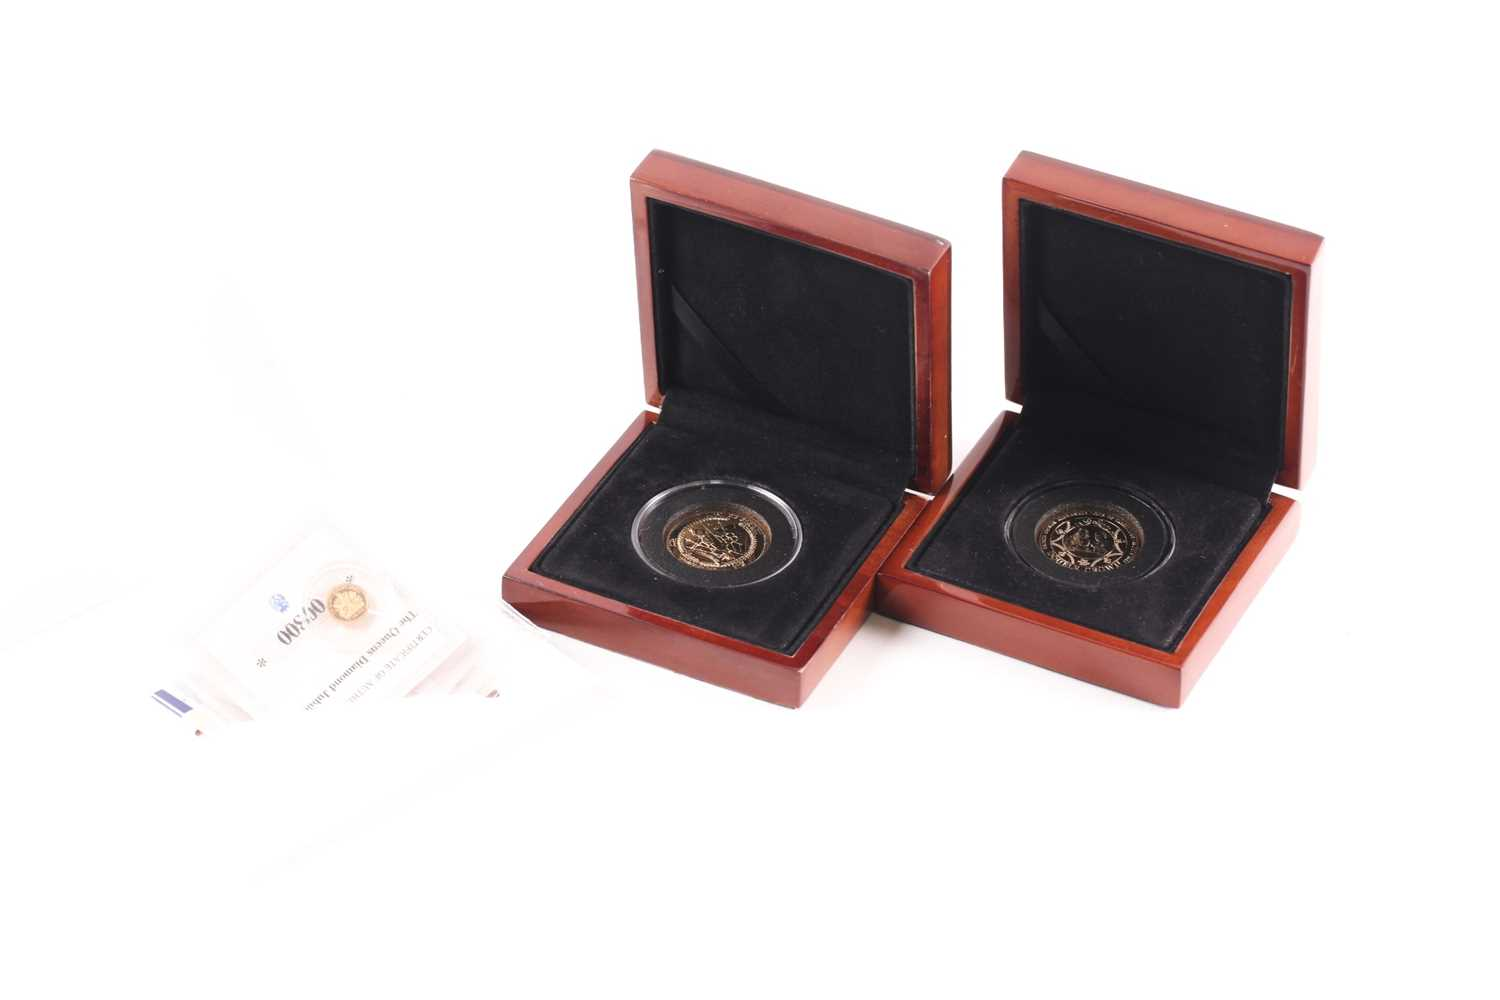 Two boxed 9ct gold proof Double Crowns, commemorating the birth of Prince George (2014) and